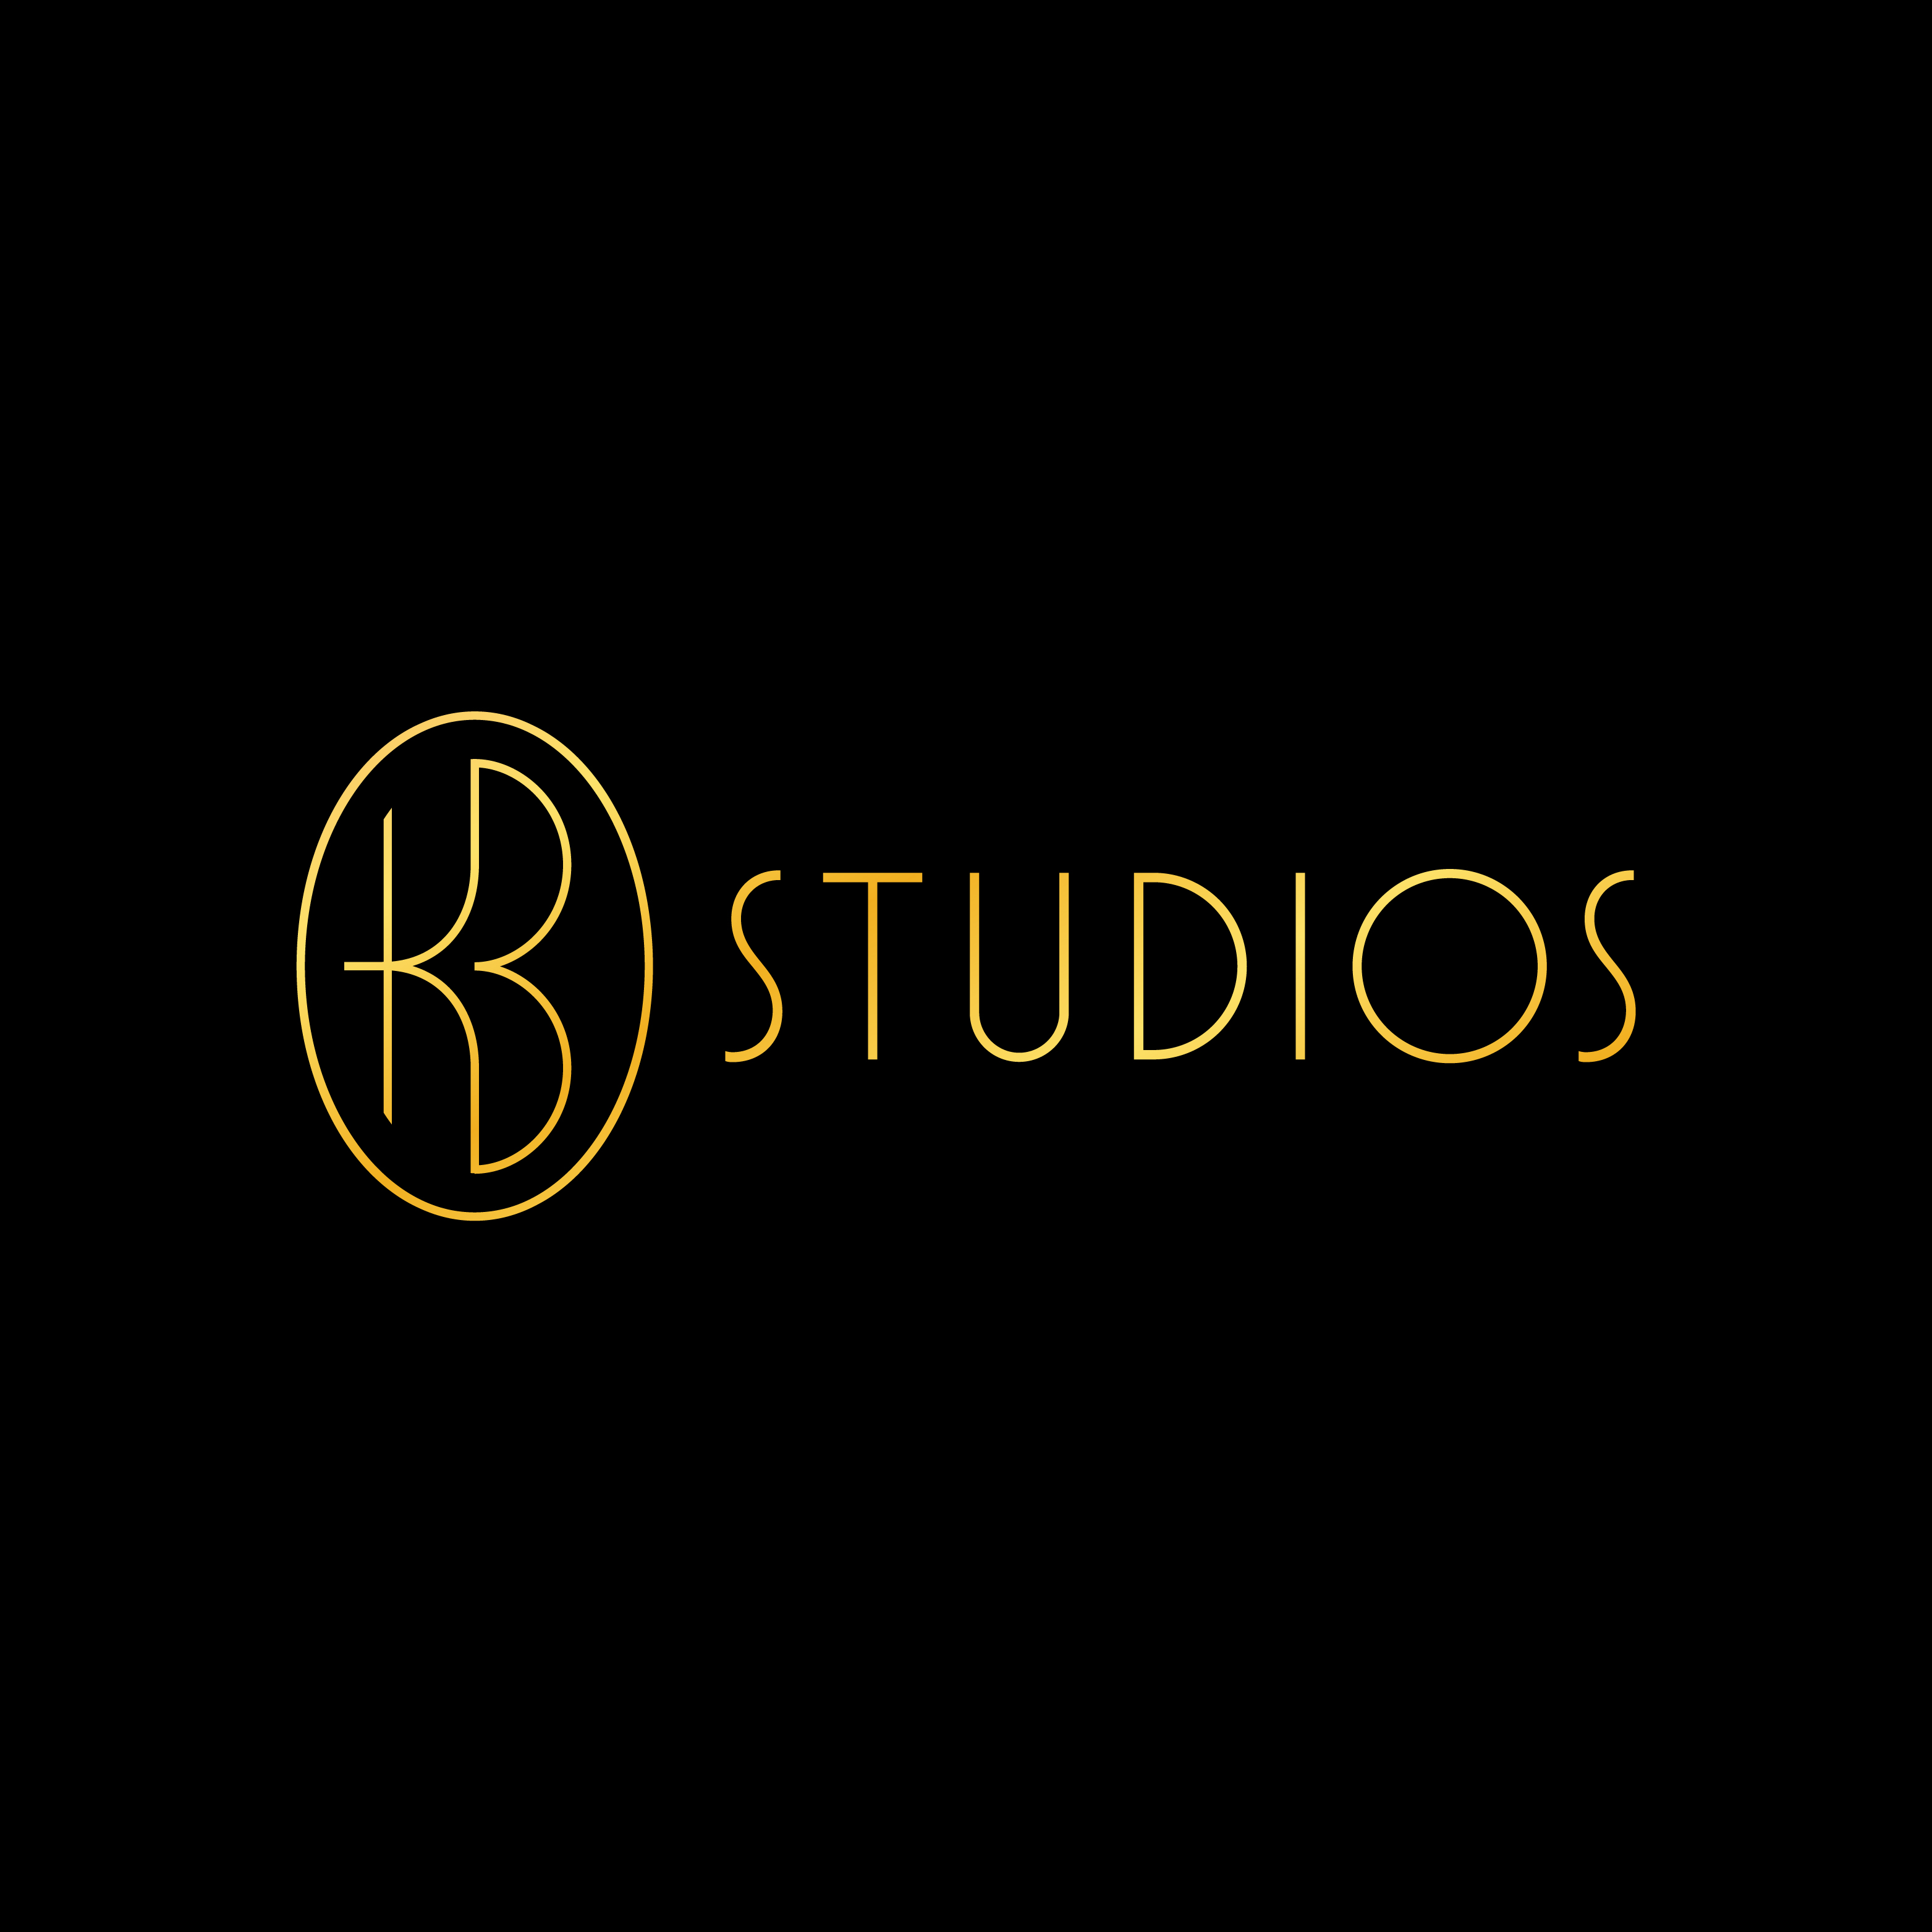 KB Studios logo by Hunter Oden of oden.house